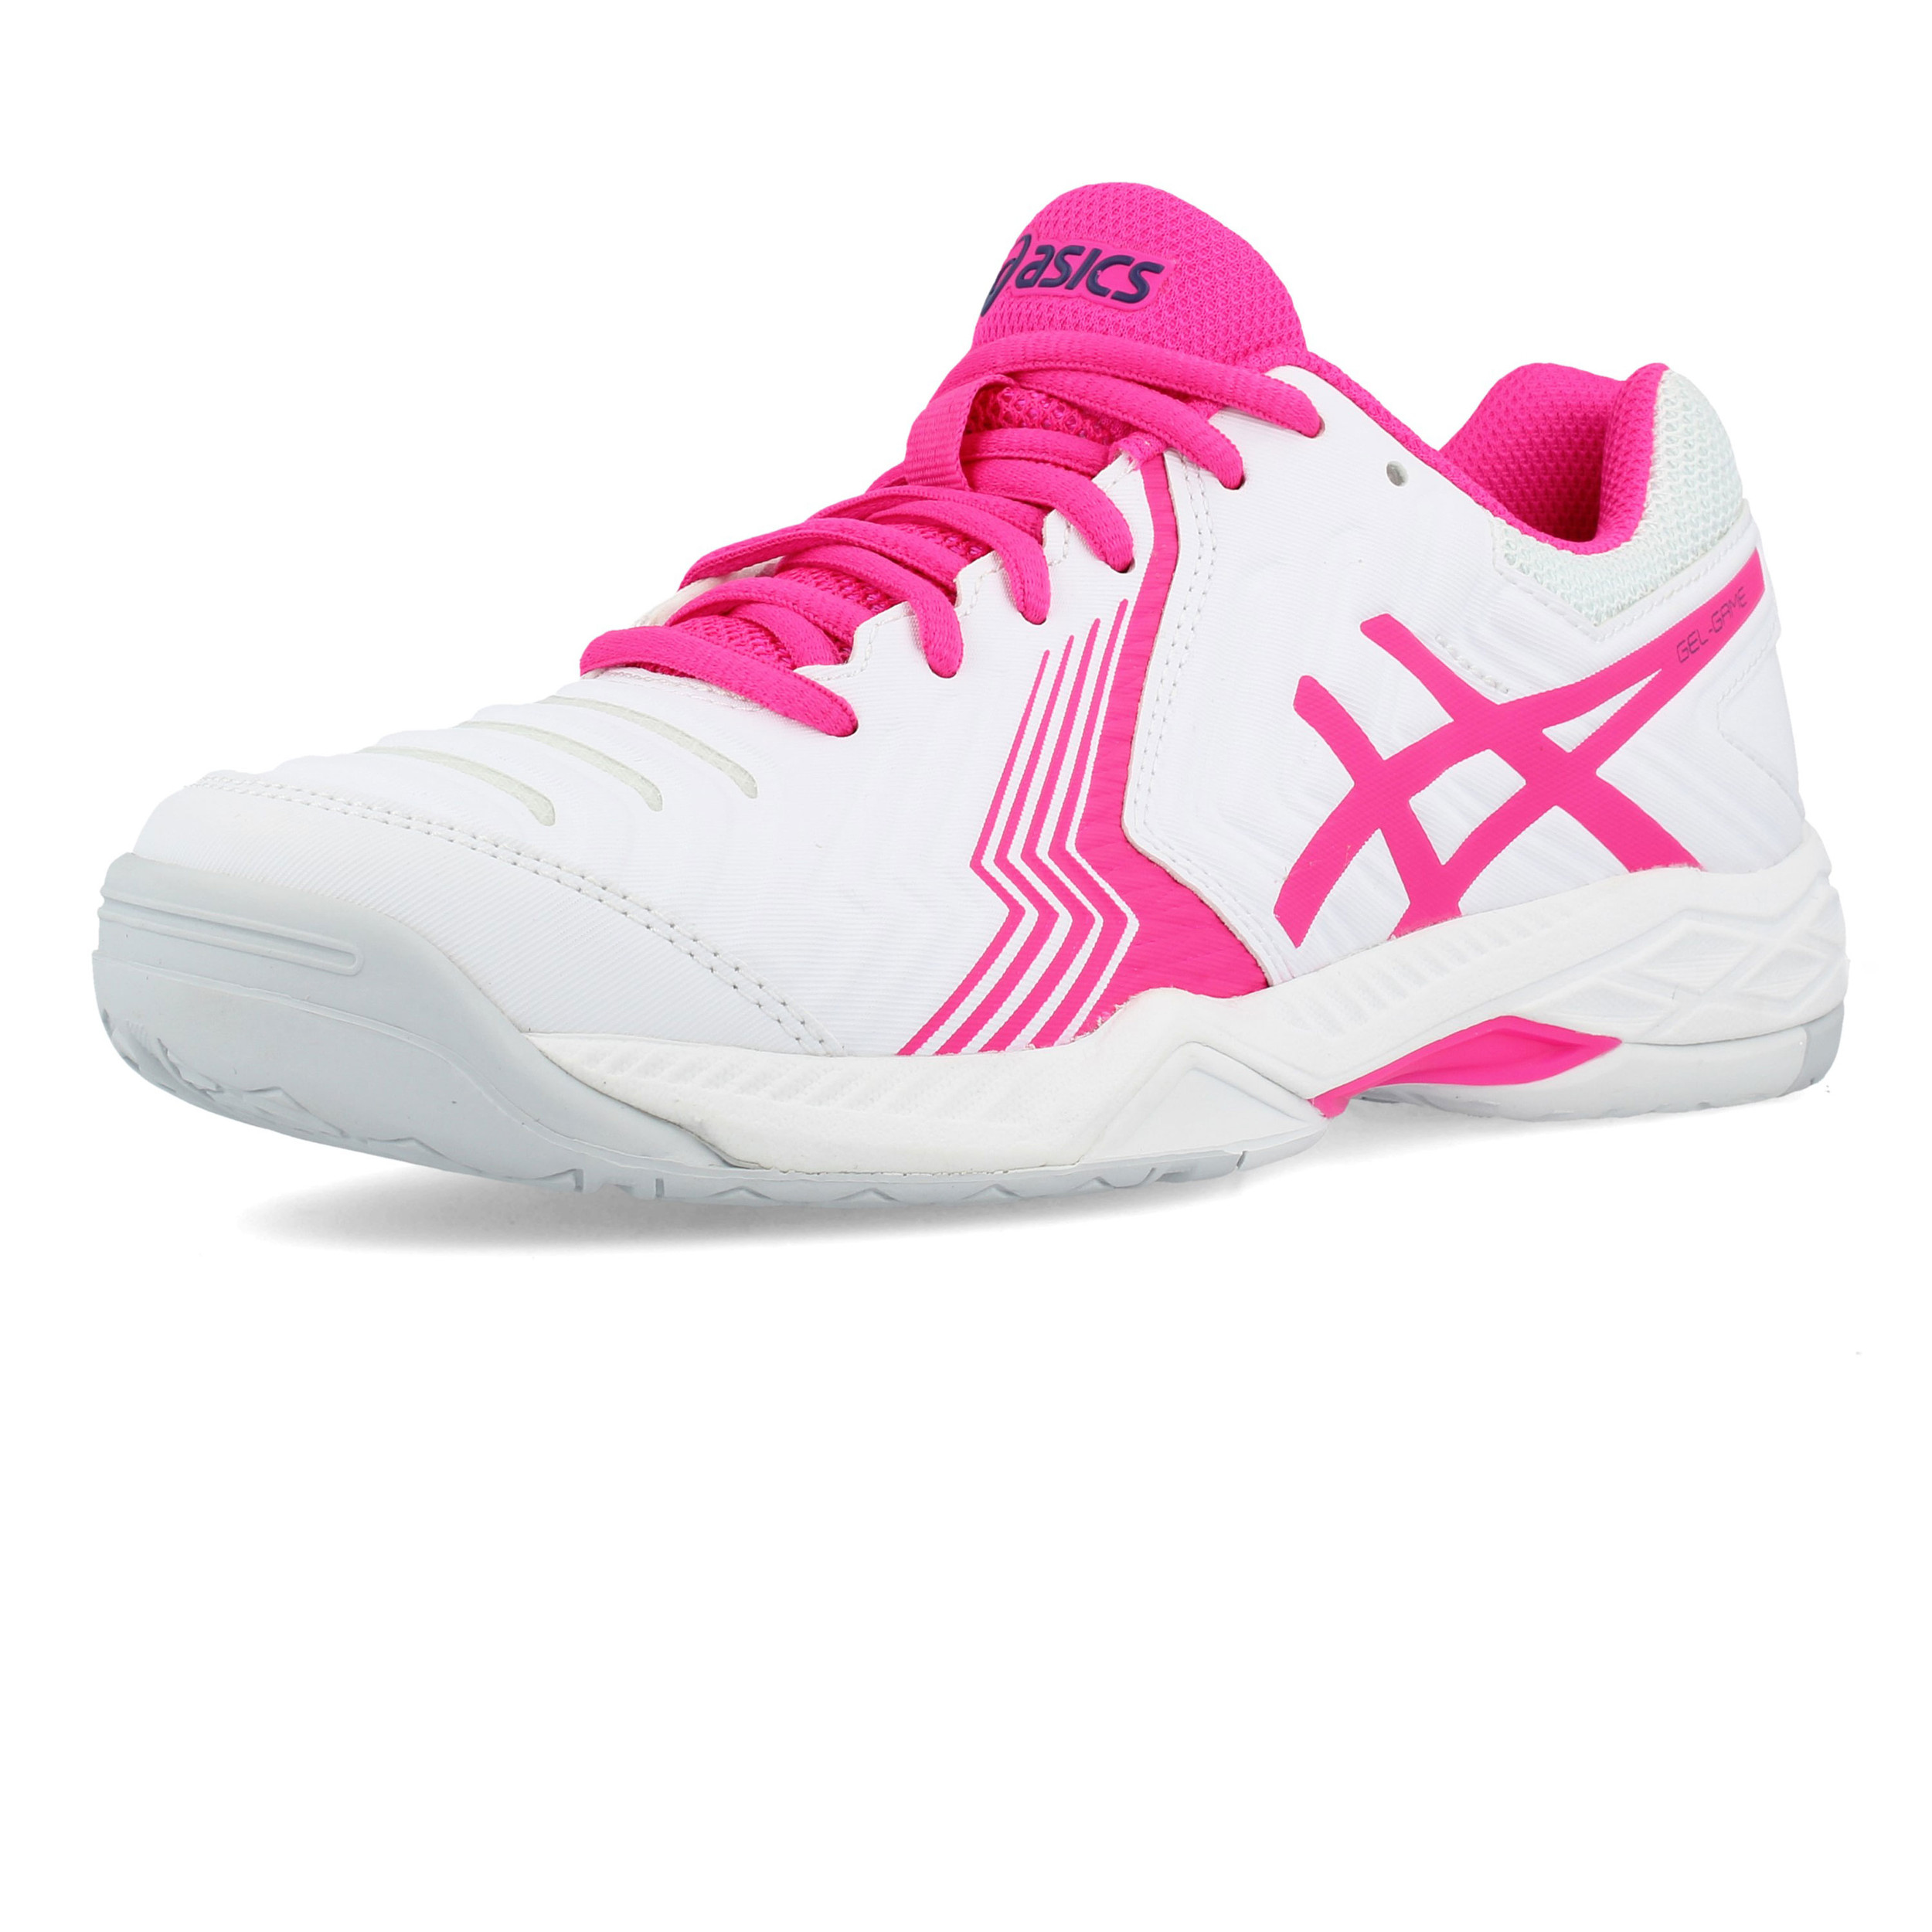 Details about Asics Womens Gel-Game 6 Tennis Shoes White Breathable  Lightweight Trainers a3417b1cf914c